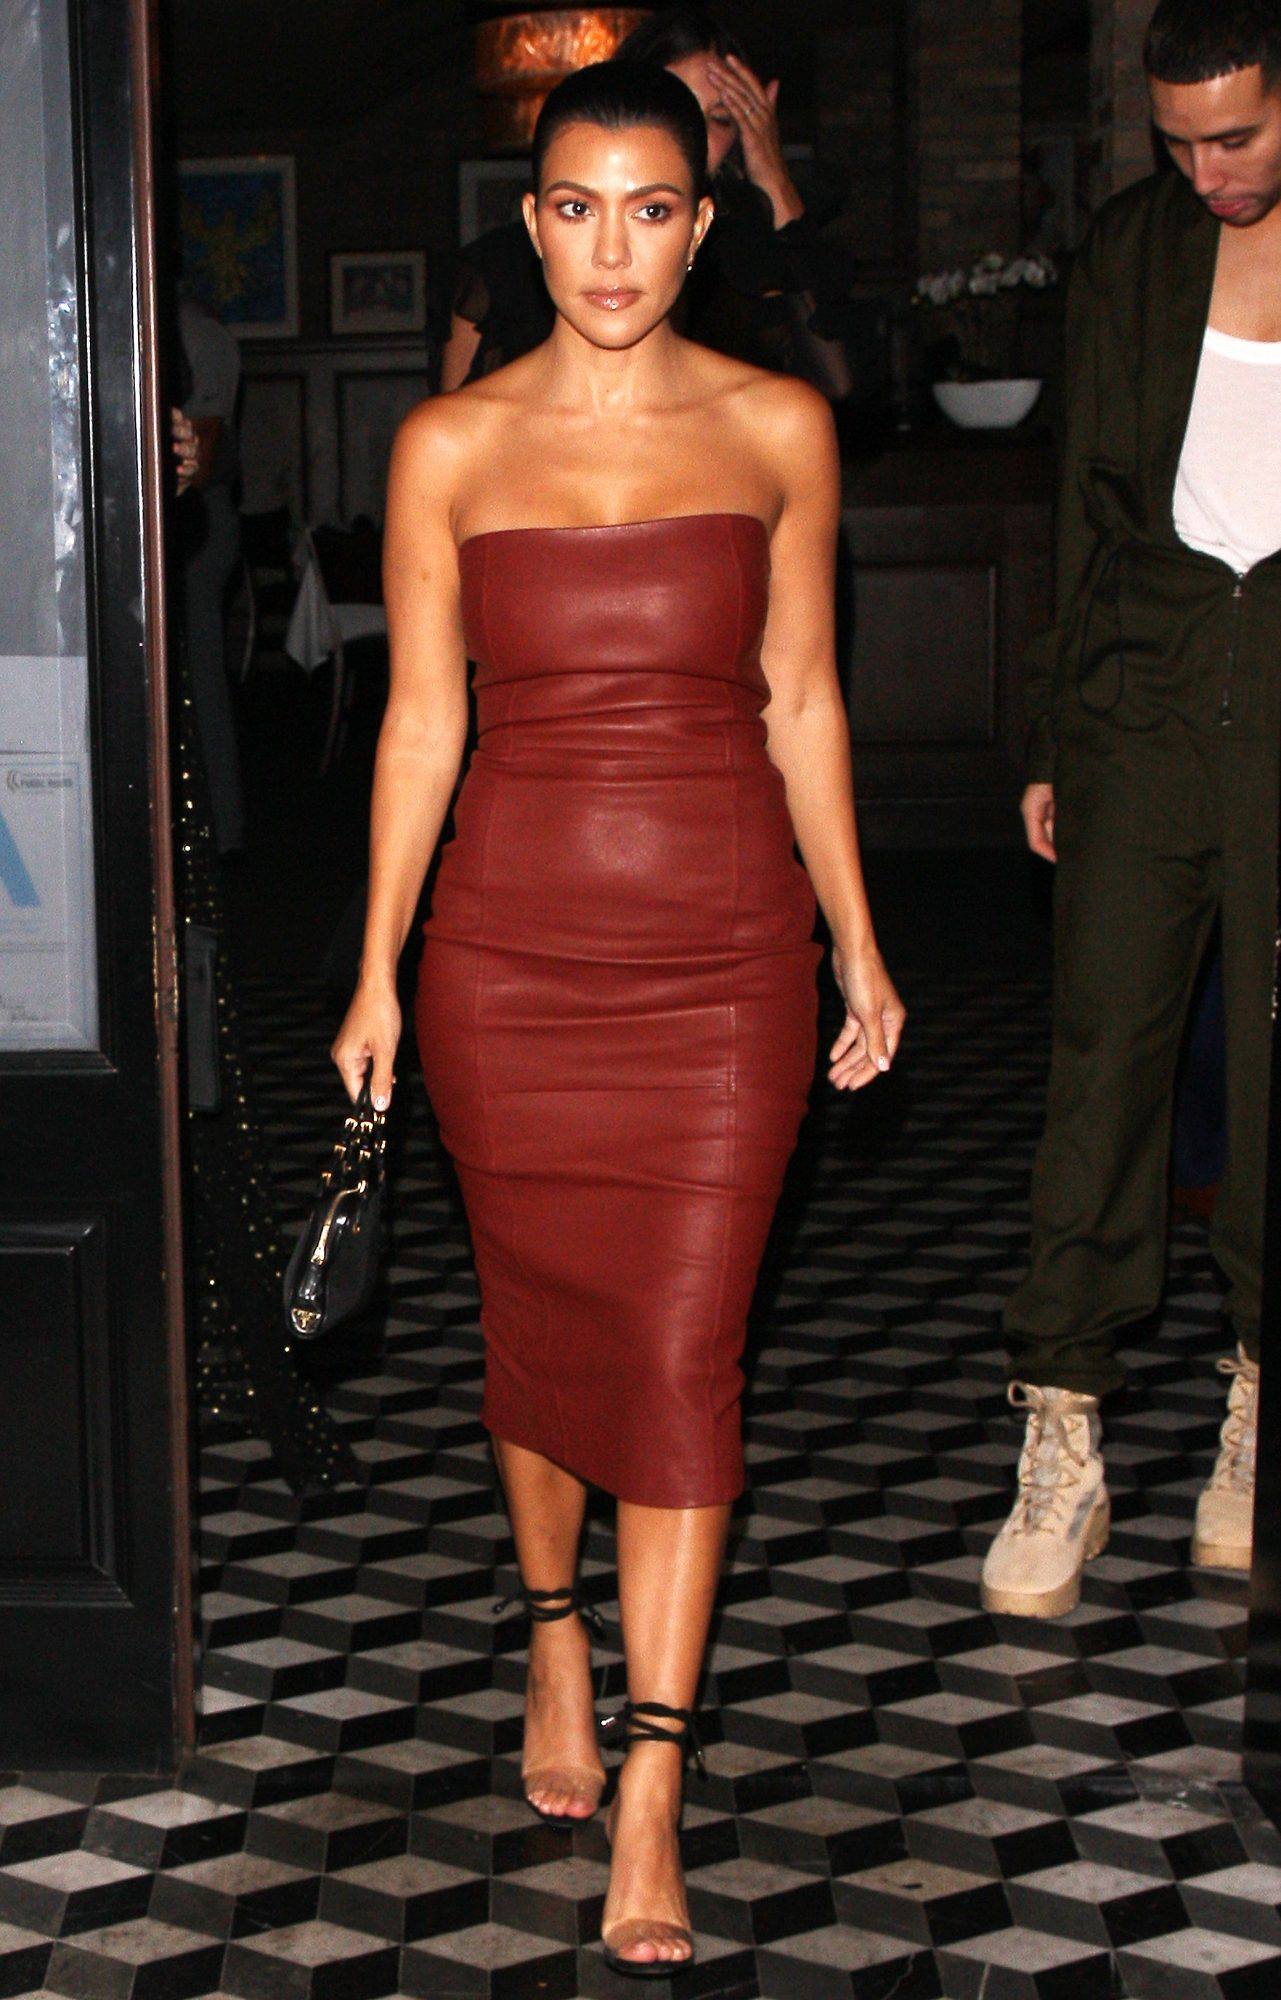 Kourtney Kardashian wears a maroon red leather dress as she is seen leaving Catch LA, then heading over to Craig's Restaurant with her friends